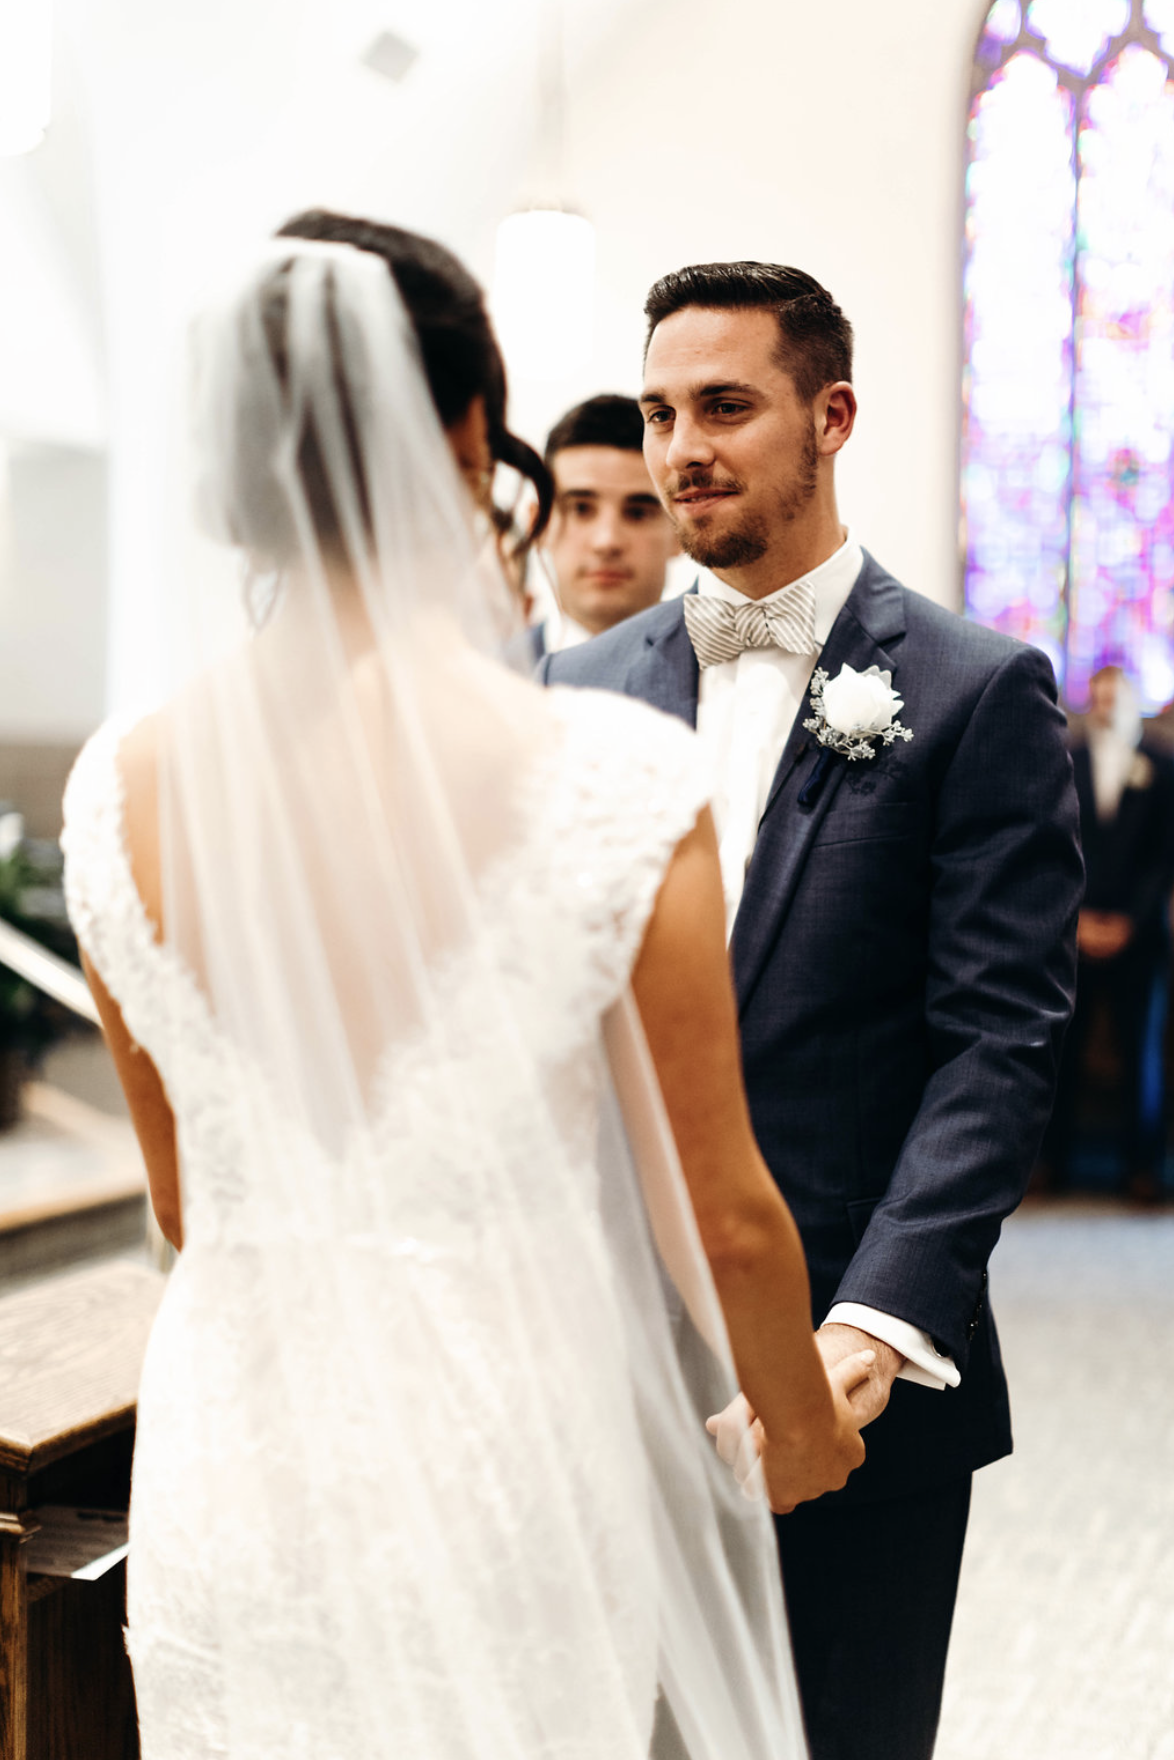 Valerie-and-TJ-McConnell-Wedding-Coordination-by-Cassandra-Clair-Event-Prep-Pittsburgh-Wedding-29